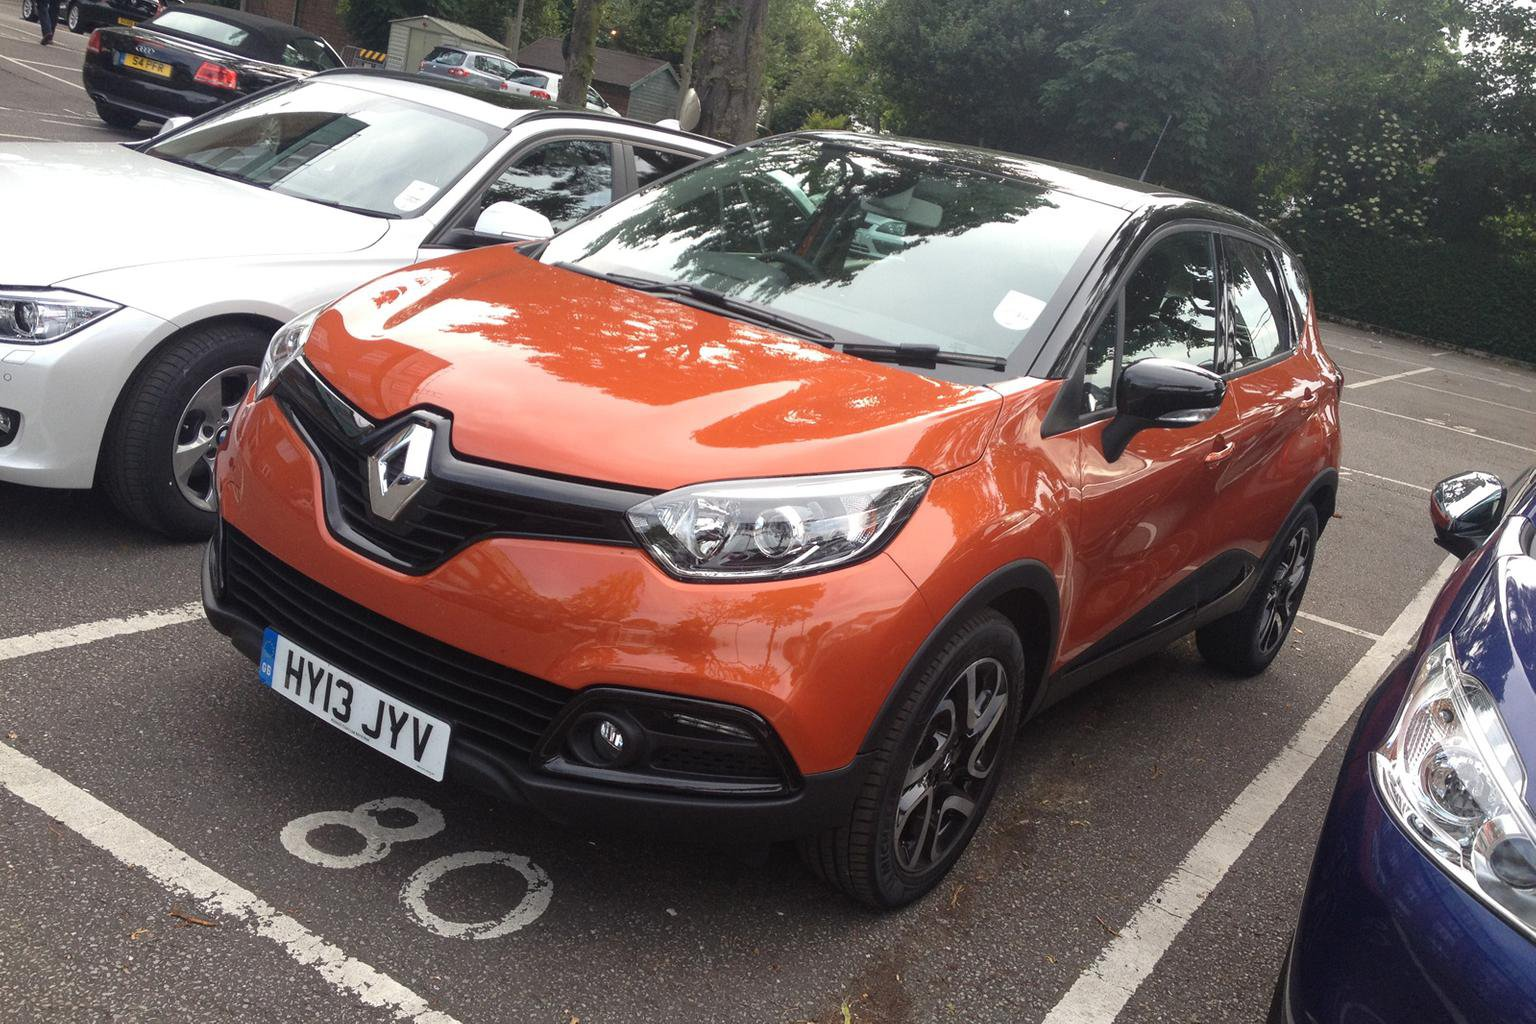 Our cars: Captur, i3, Octavia, 500L and Santa Fe